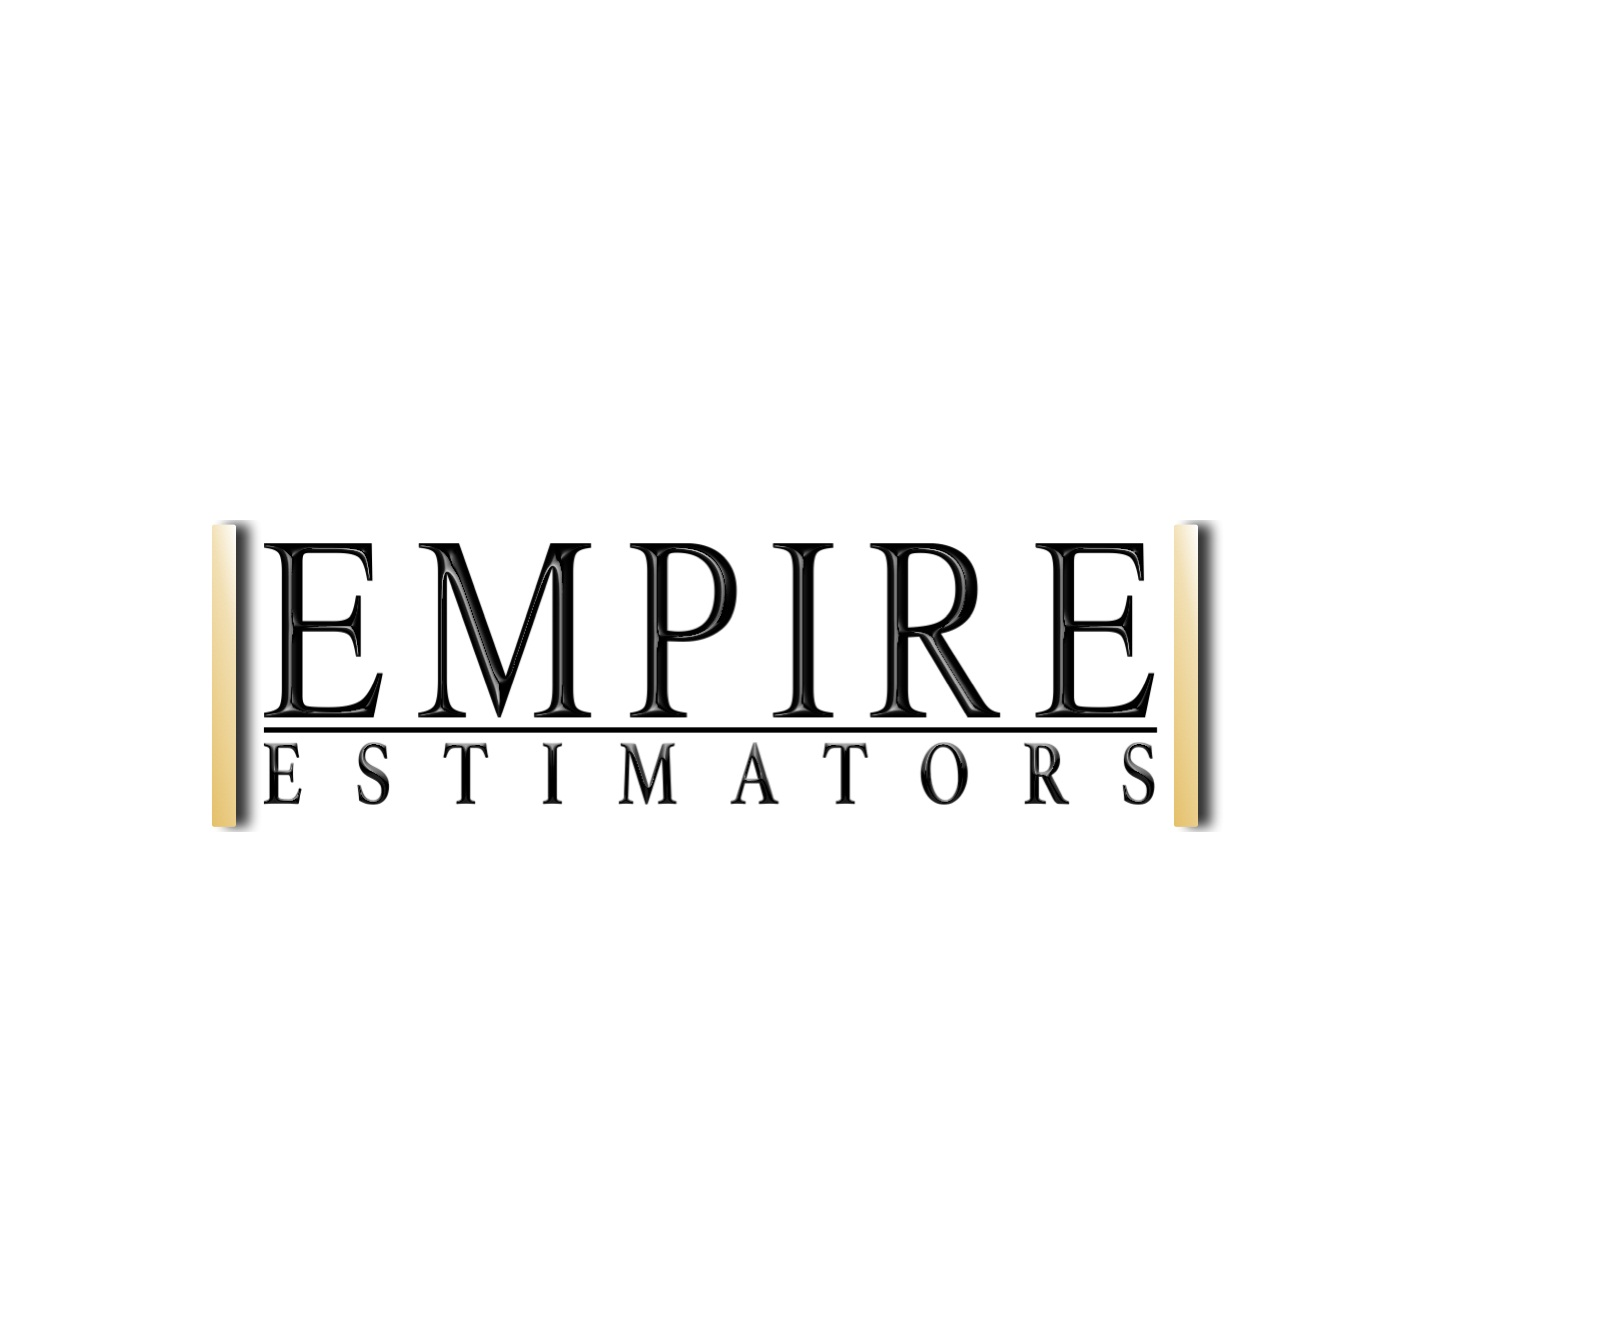 Empire Estimators